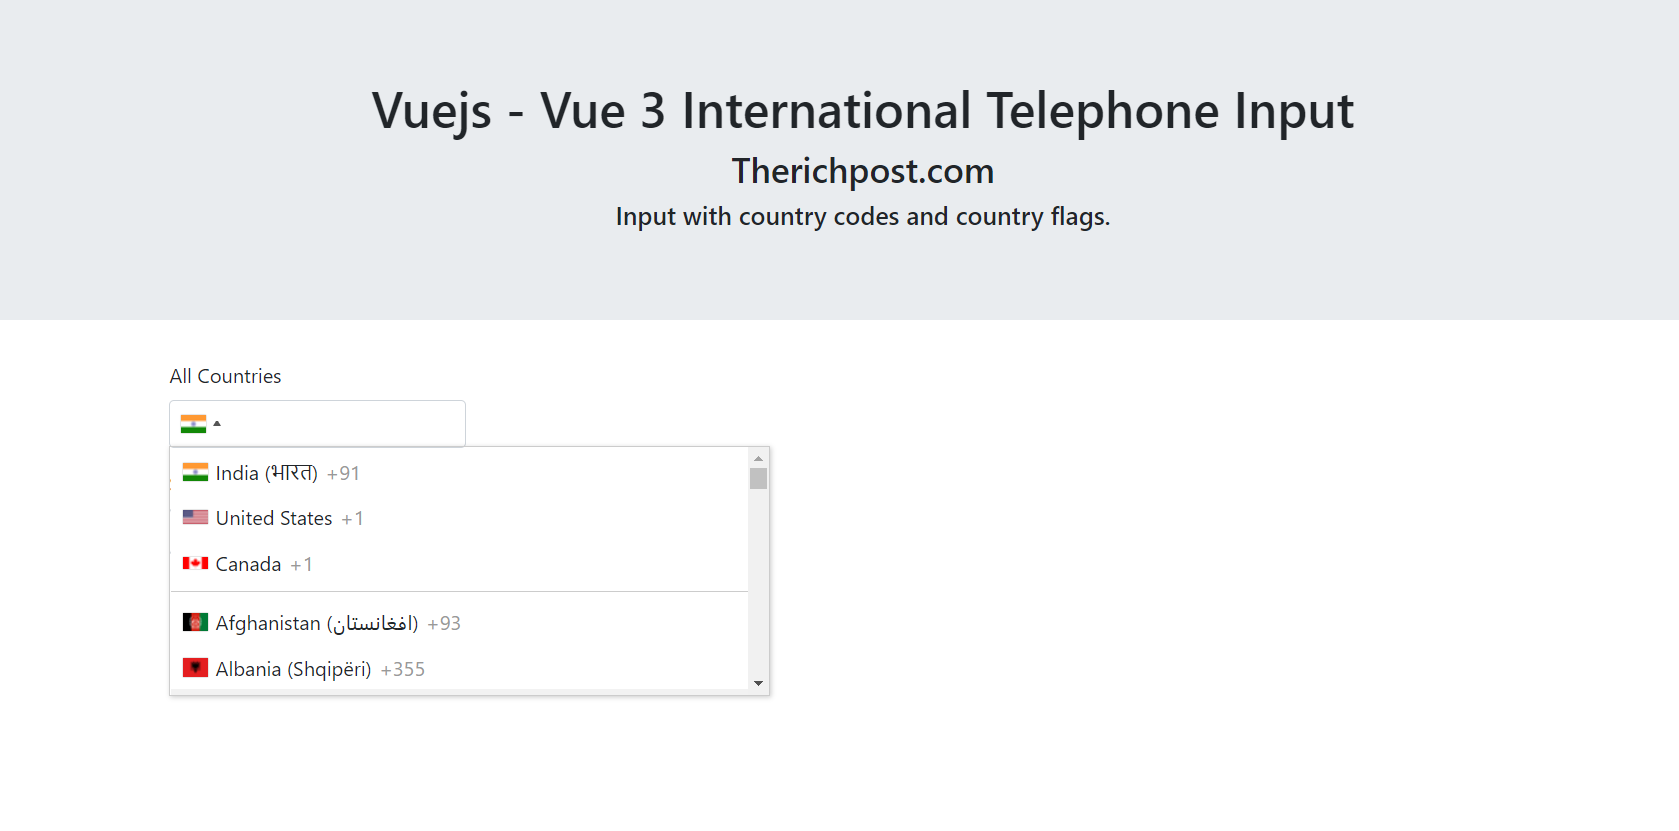 Vuejs International Telephone Input - Vue 3